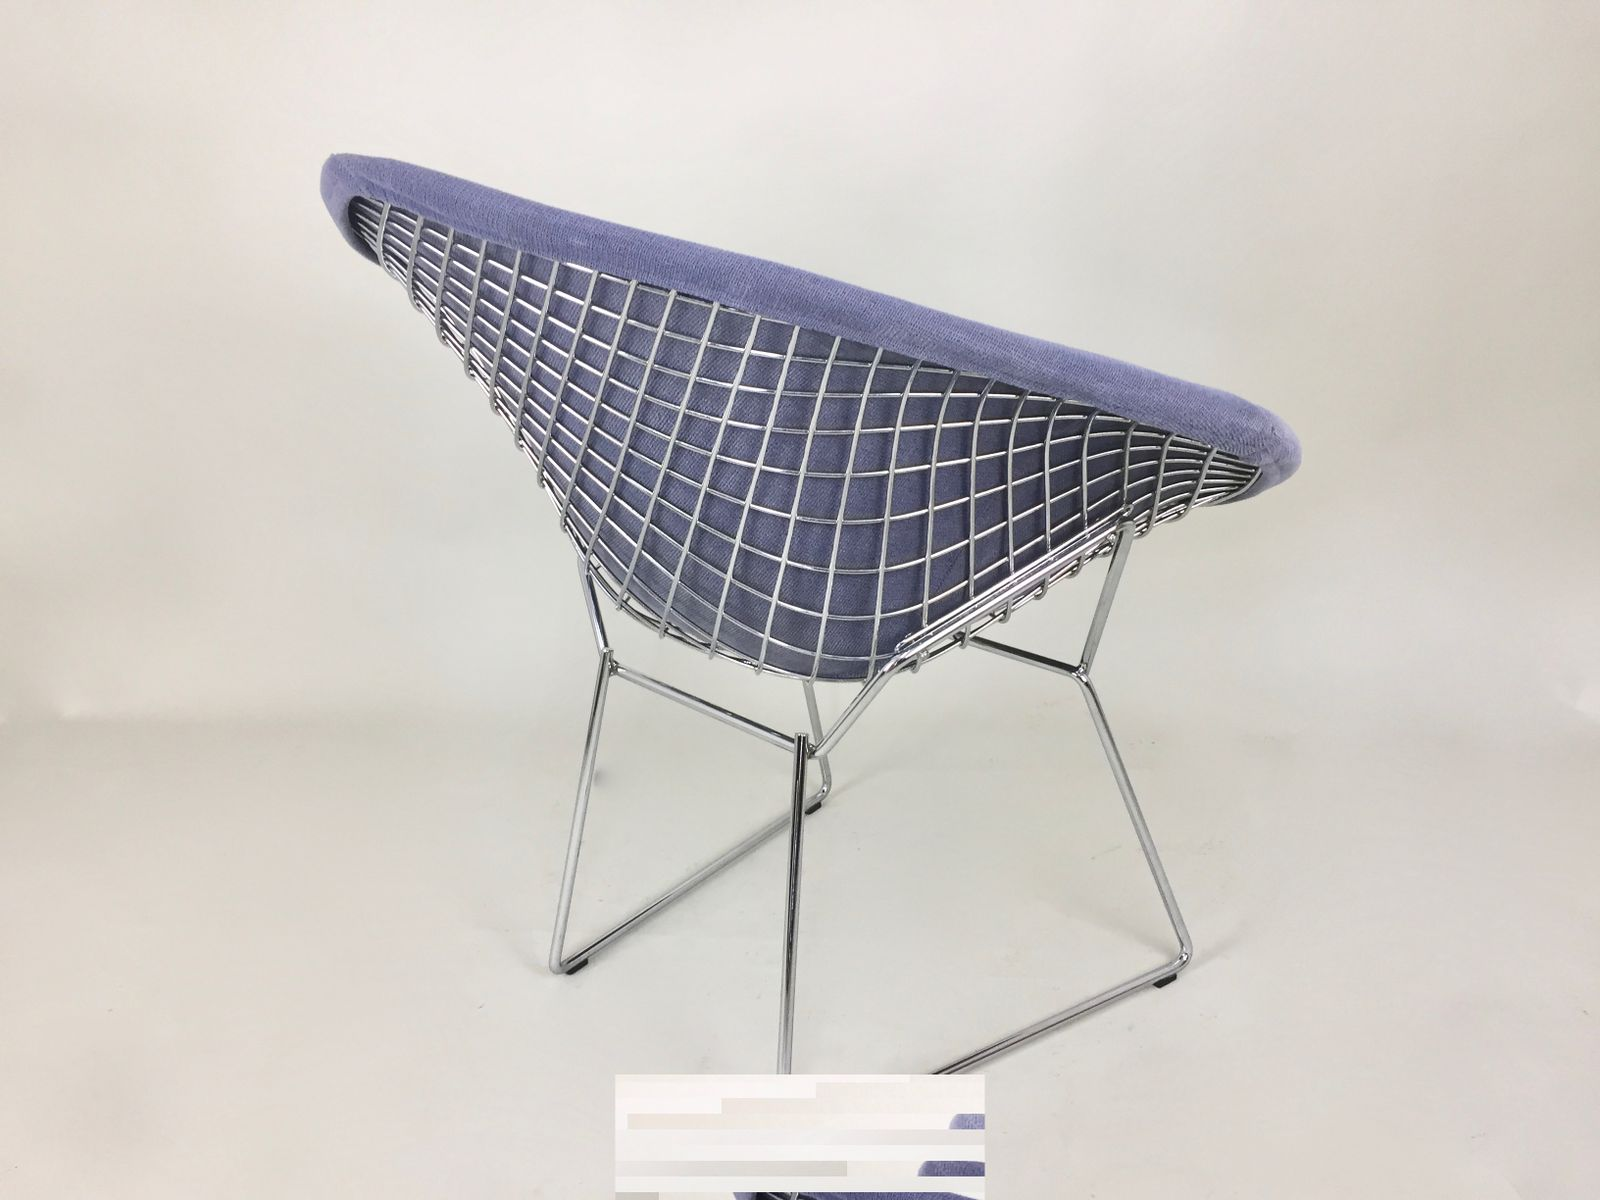 Bertoia diamond chair vintage - Vintage Blue Diamond Chair By Harry Bertoia For Knoll 17 1 482 00 Price Per Piece